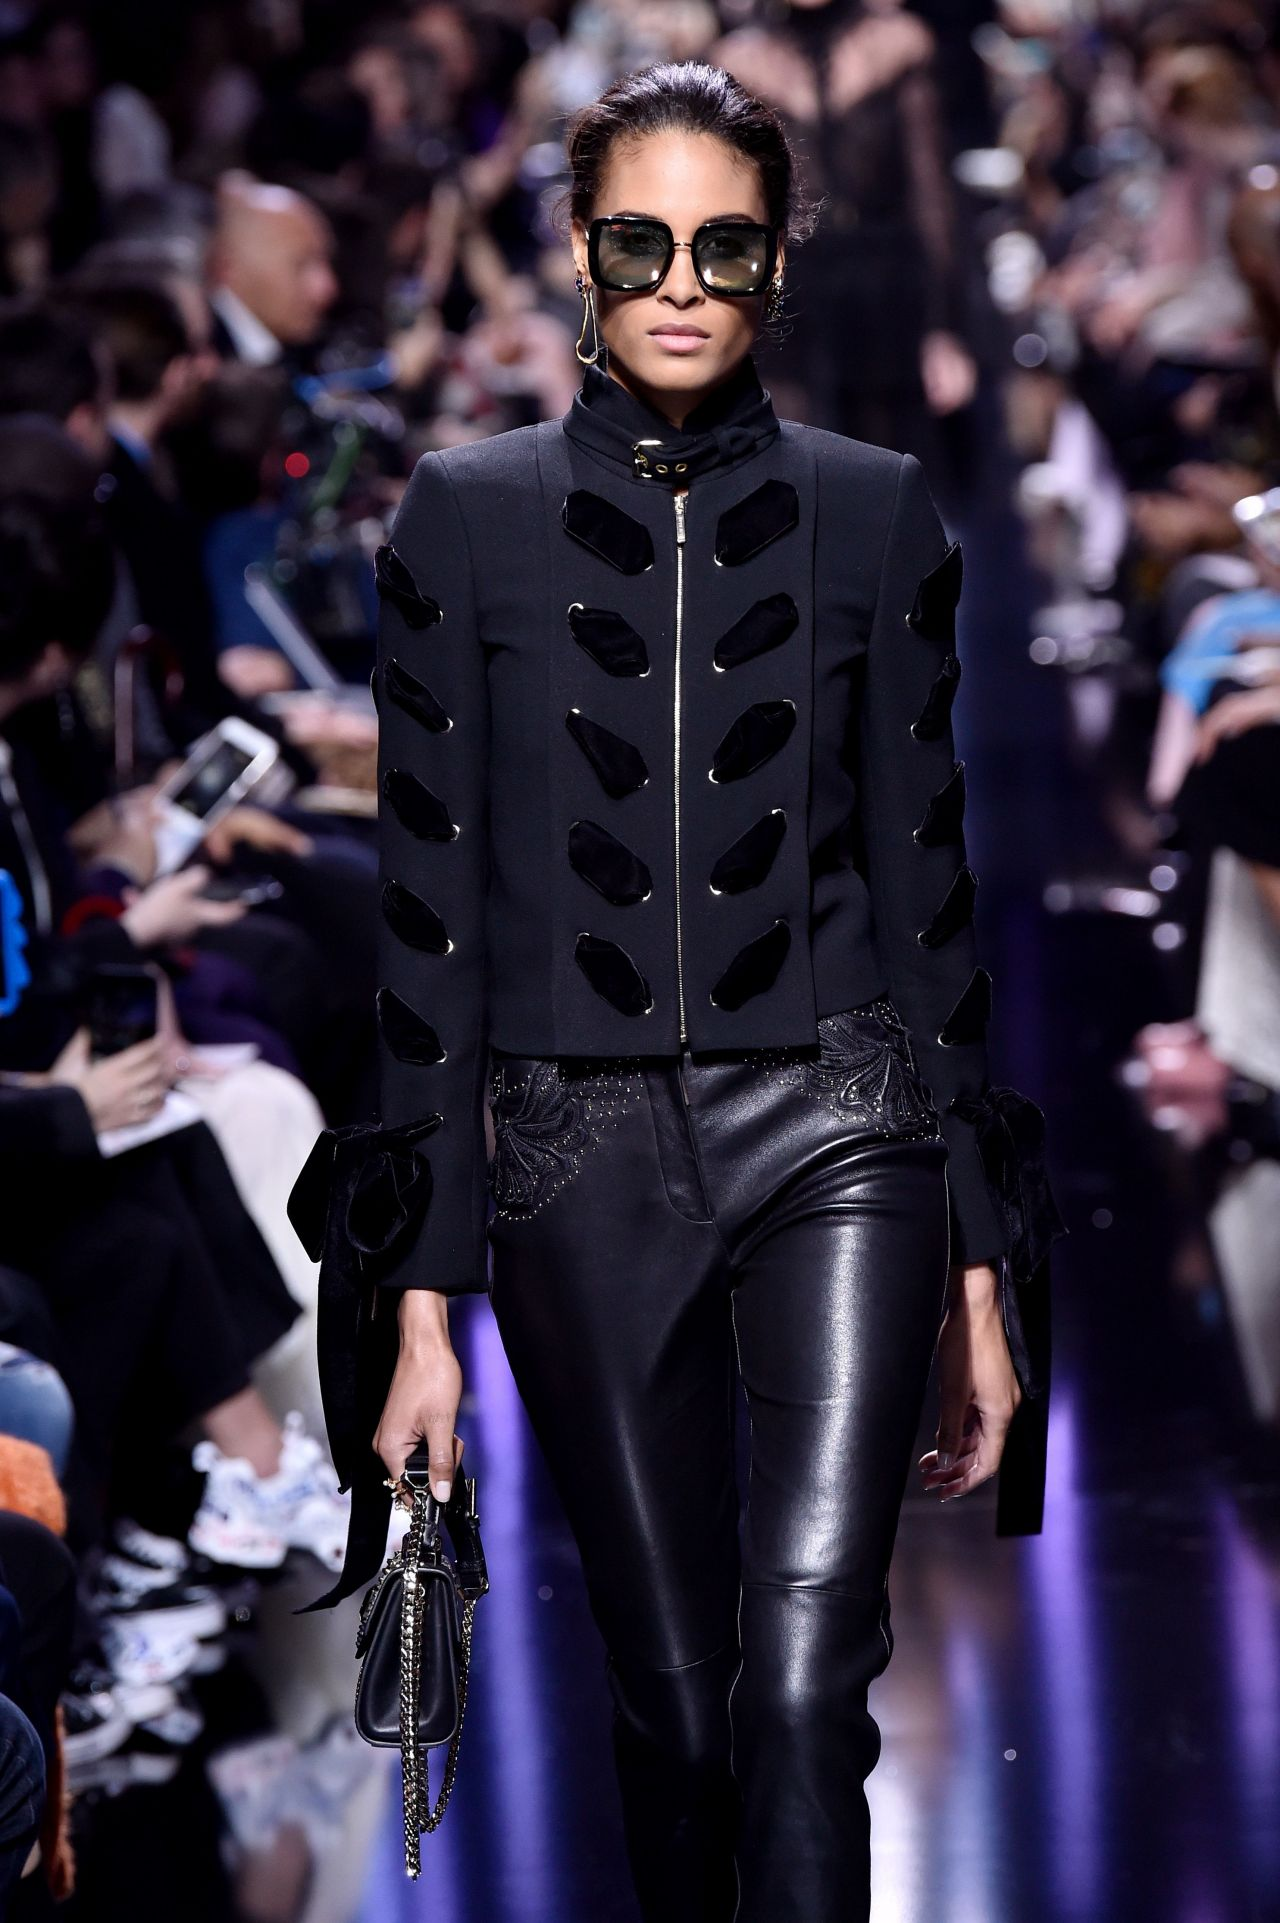 Cindy Bruna Elie Saab Show Runway On Paris Fashion Week